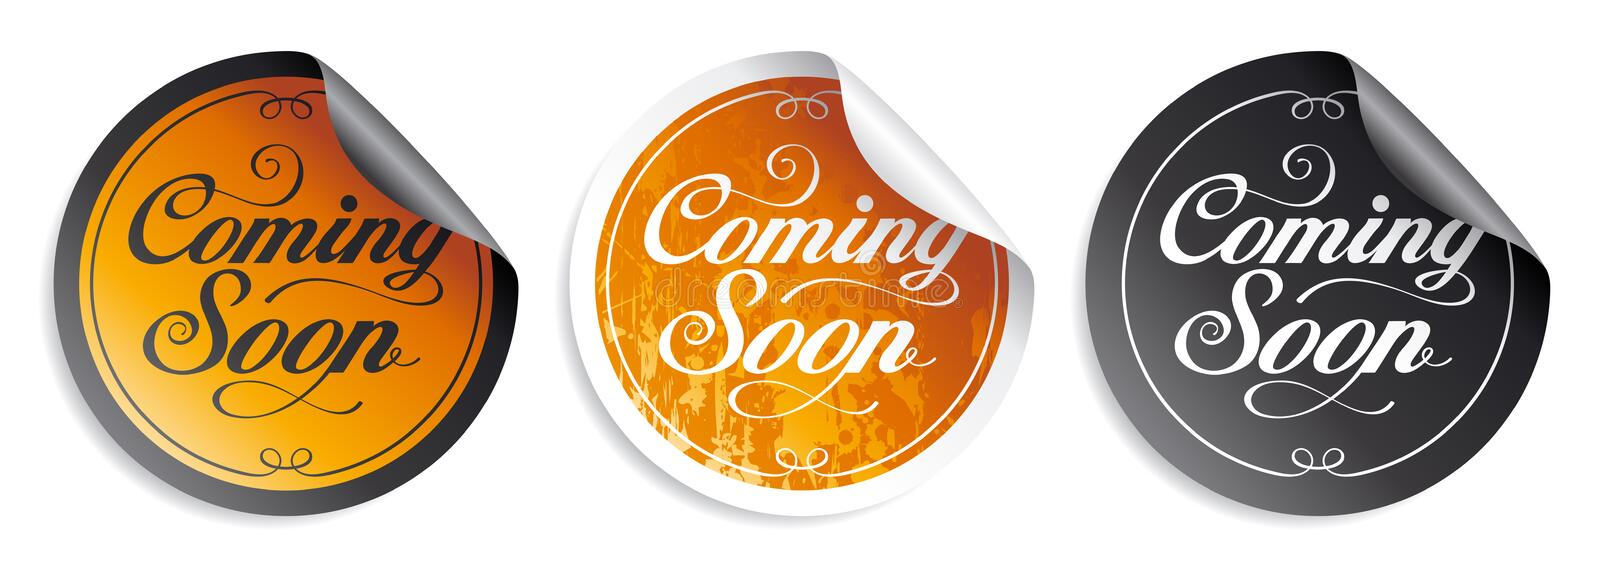 Coming soon stickers. Coming soon vintage stickers set stock illustration